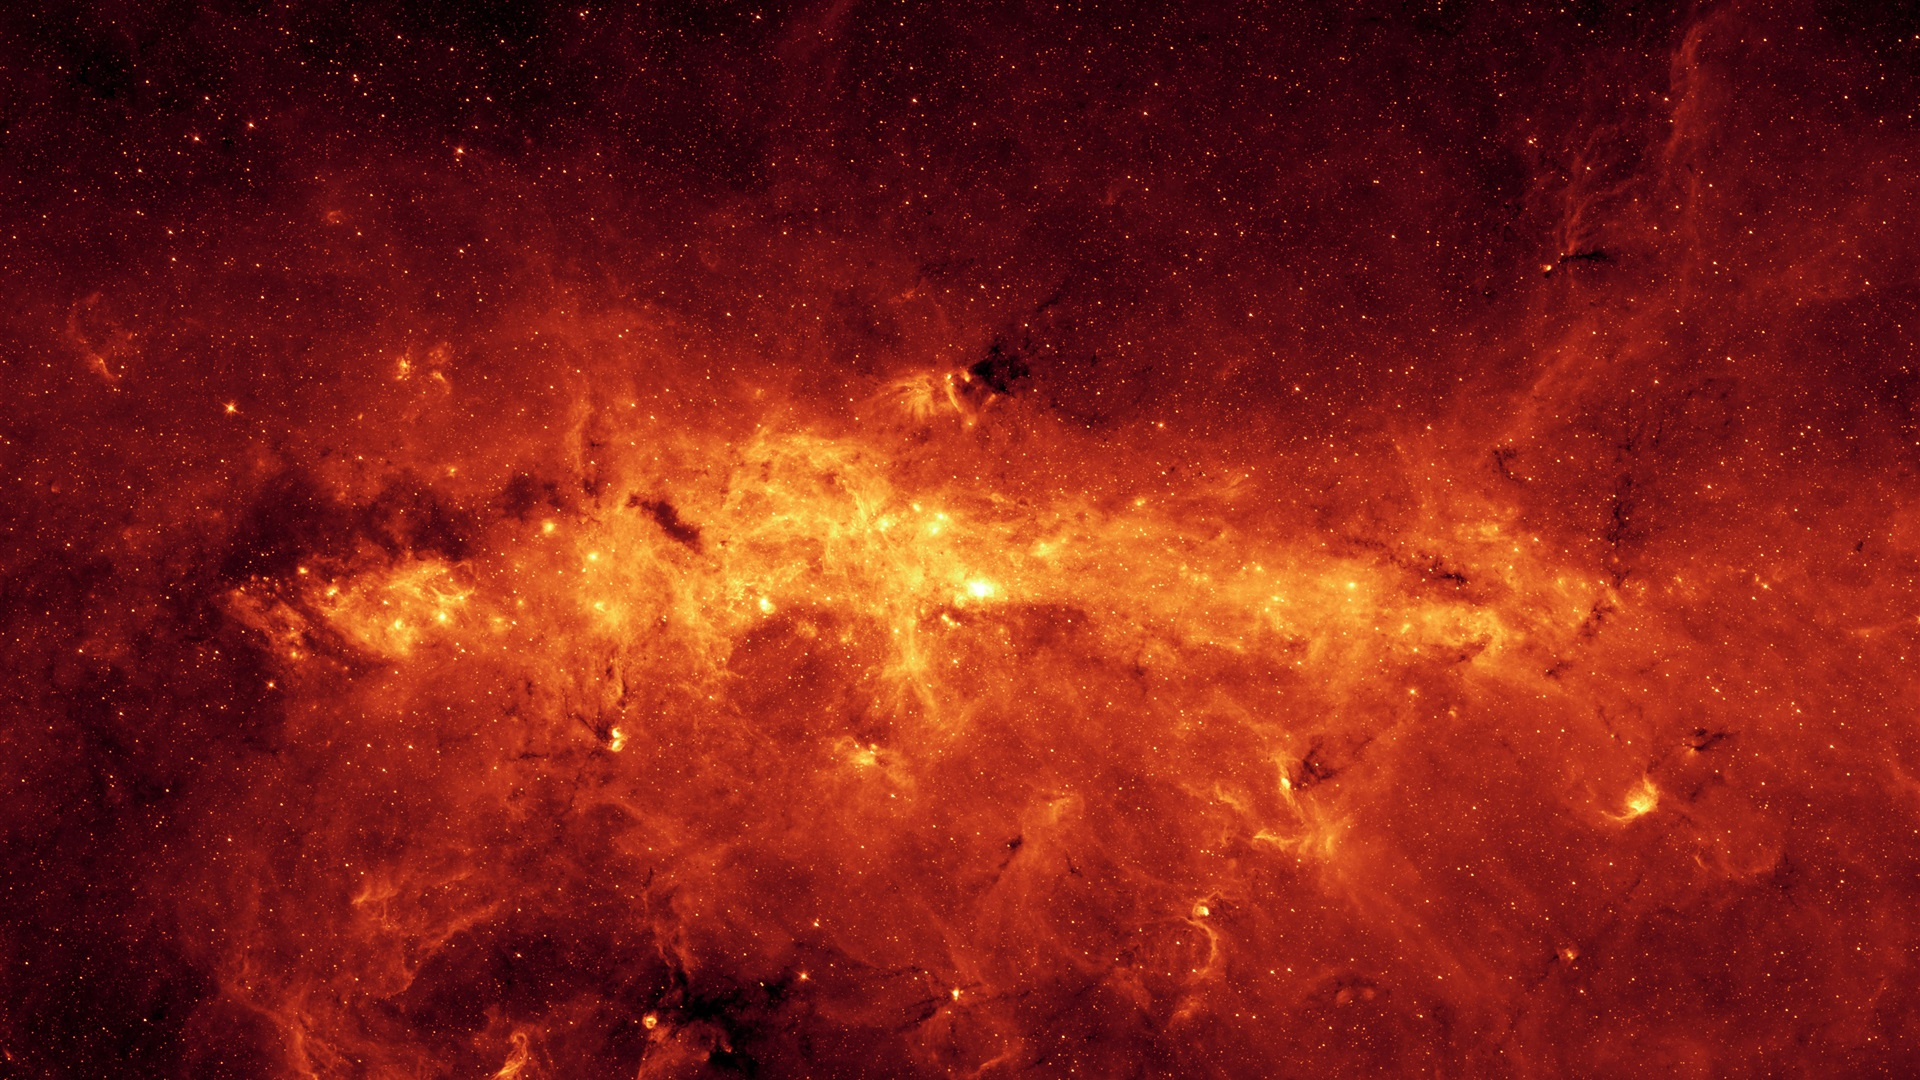 Wallpaper Space Red Stars Universe 3840x2160 Uhd 4k Picture Image